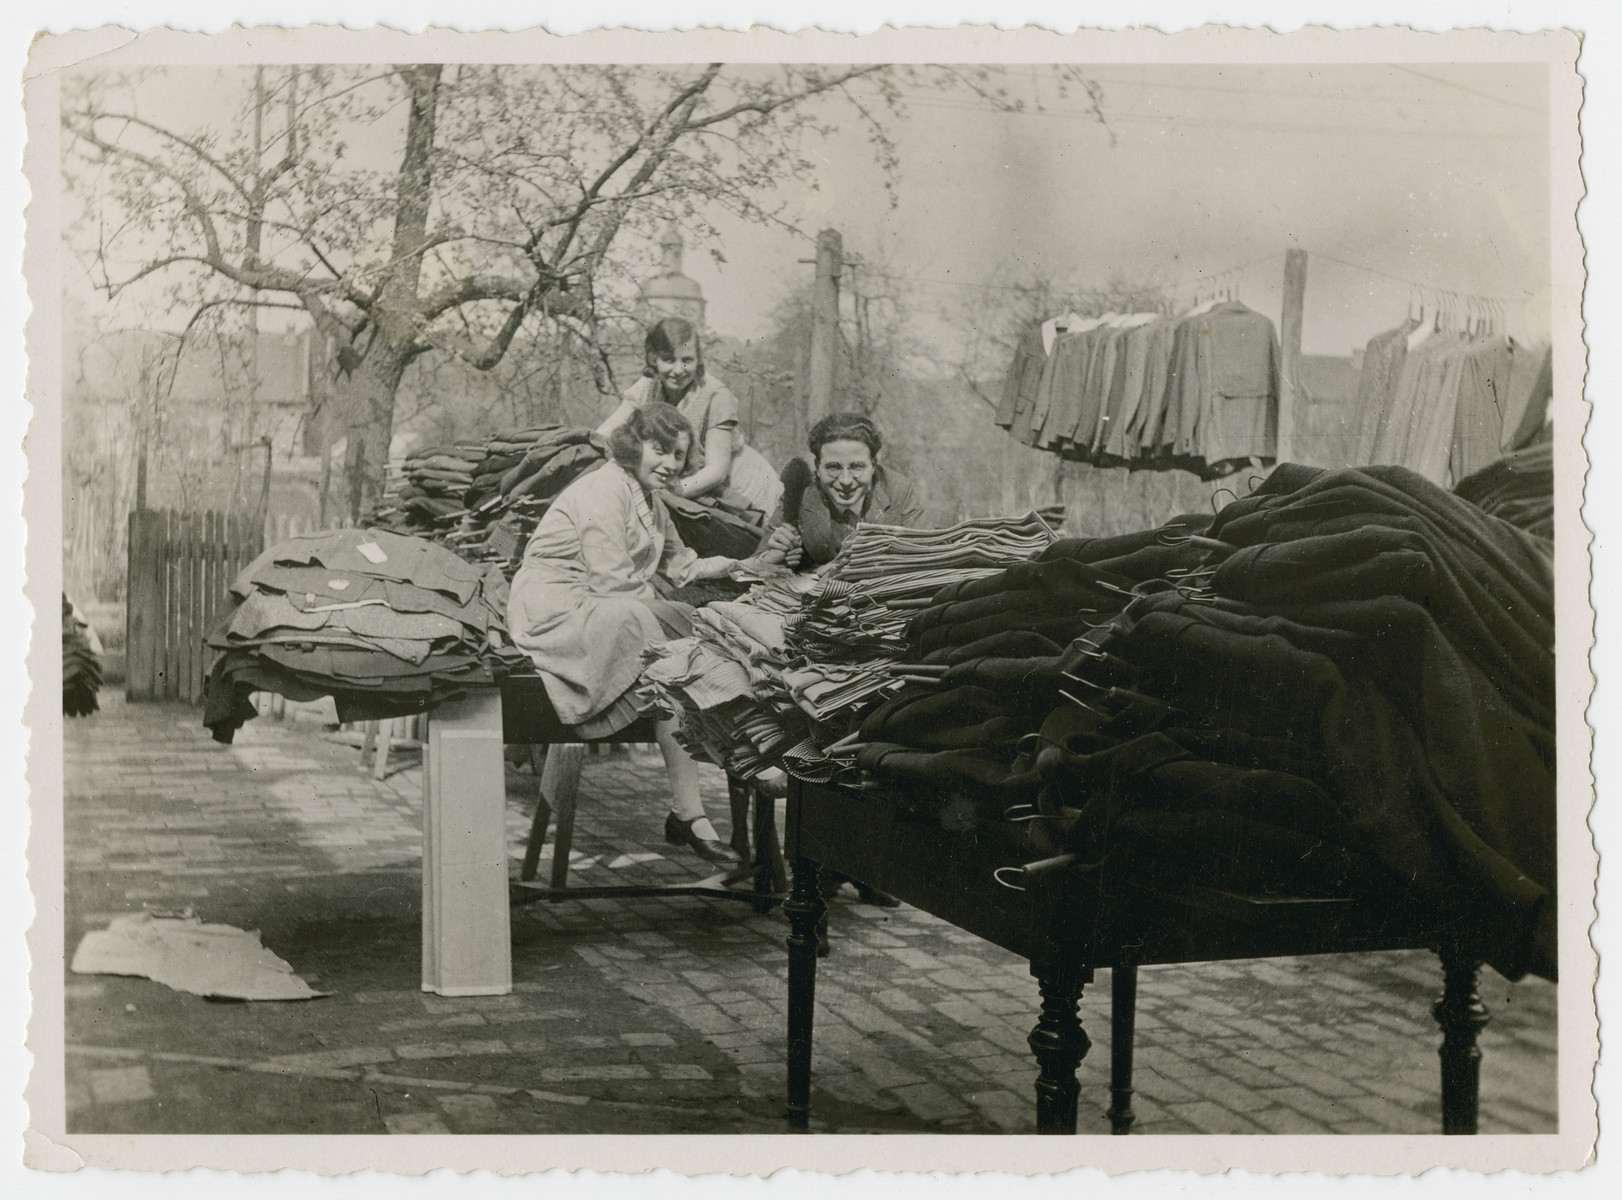 The Kleeblatts air out clothing from their store during their spring cleaning.  Walter Kleeblatt is on the right.  His sister Edith is in the back, and Edith's friend Else is on the left.